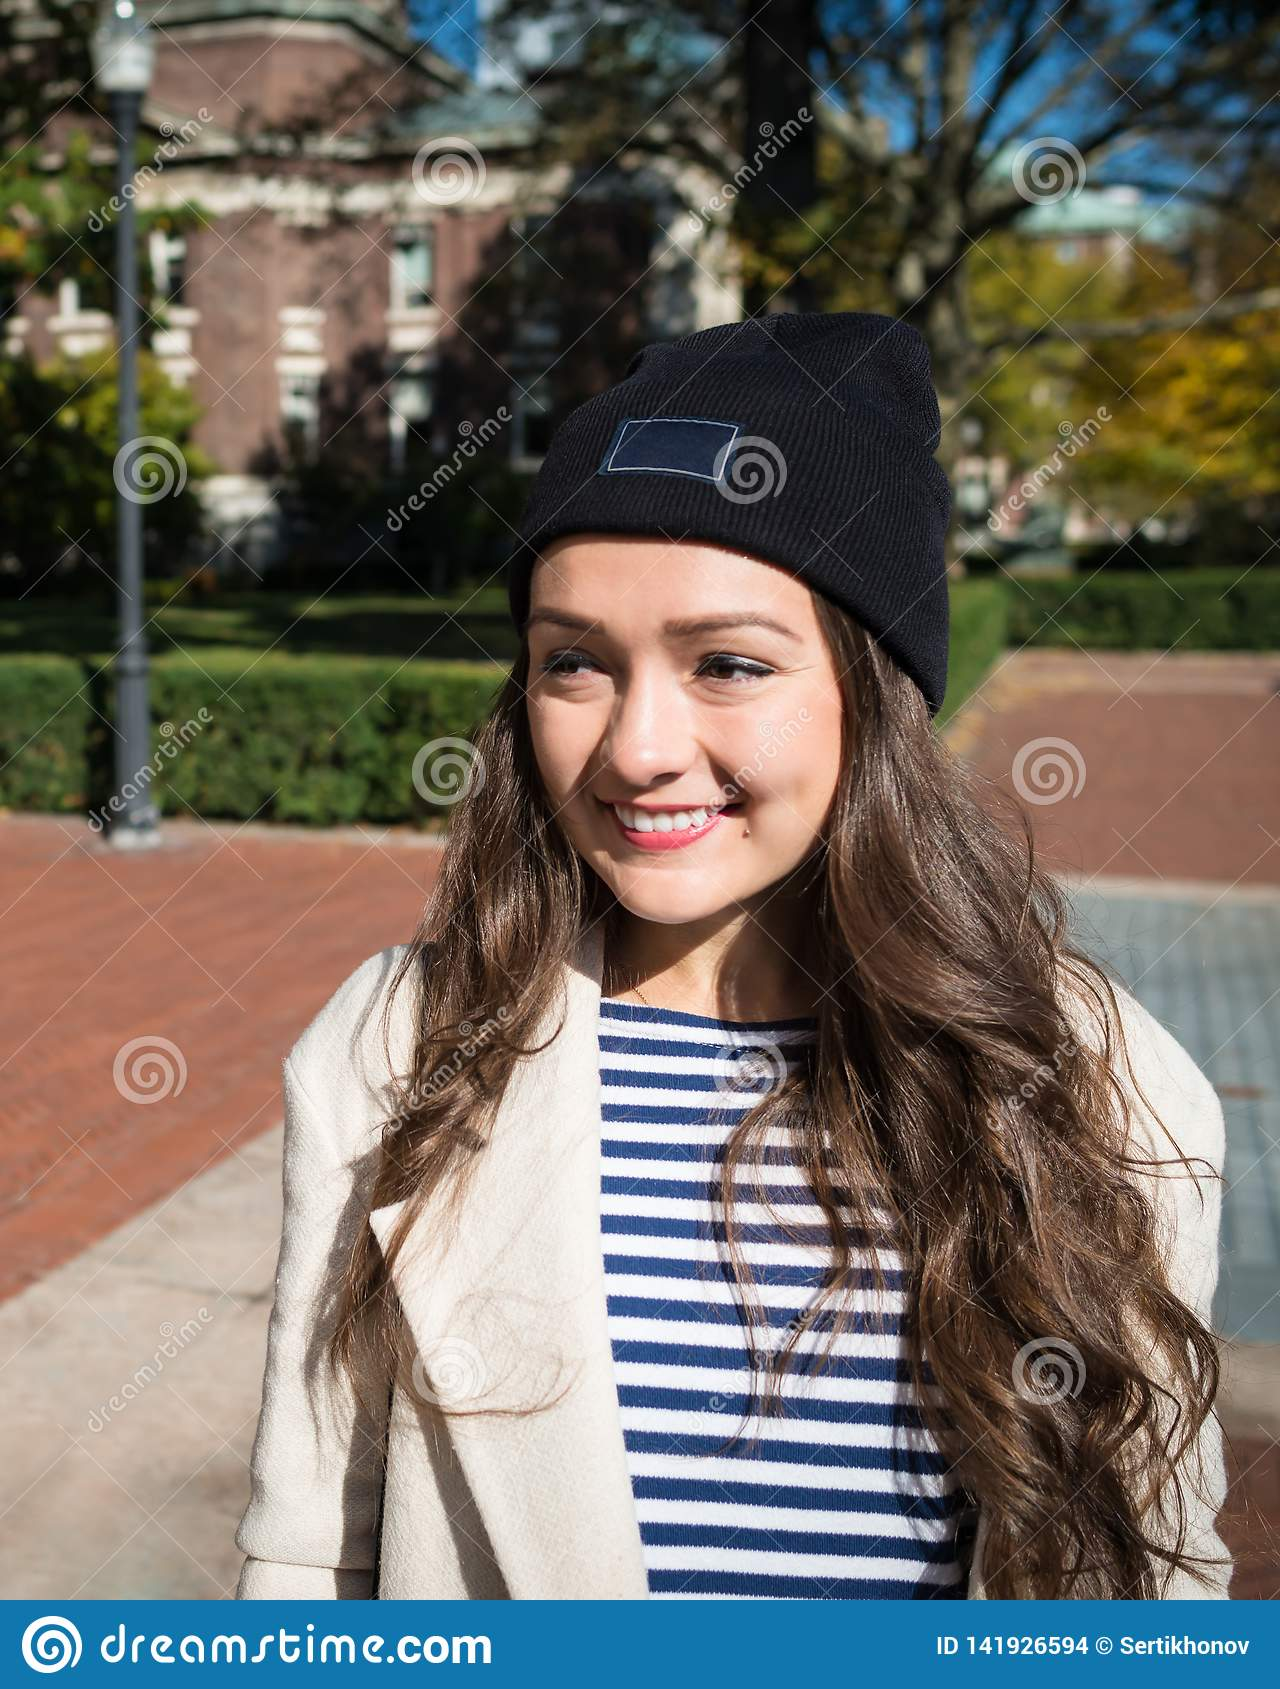 beautiful young woman stands near buildings columbia university new york usa stylish kazakh female student smiling 141926594 Just How Much You Ought To Be Prepared To Pay For An Excellent Dominican Wife